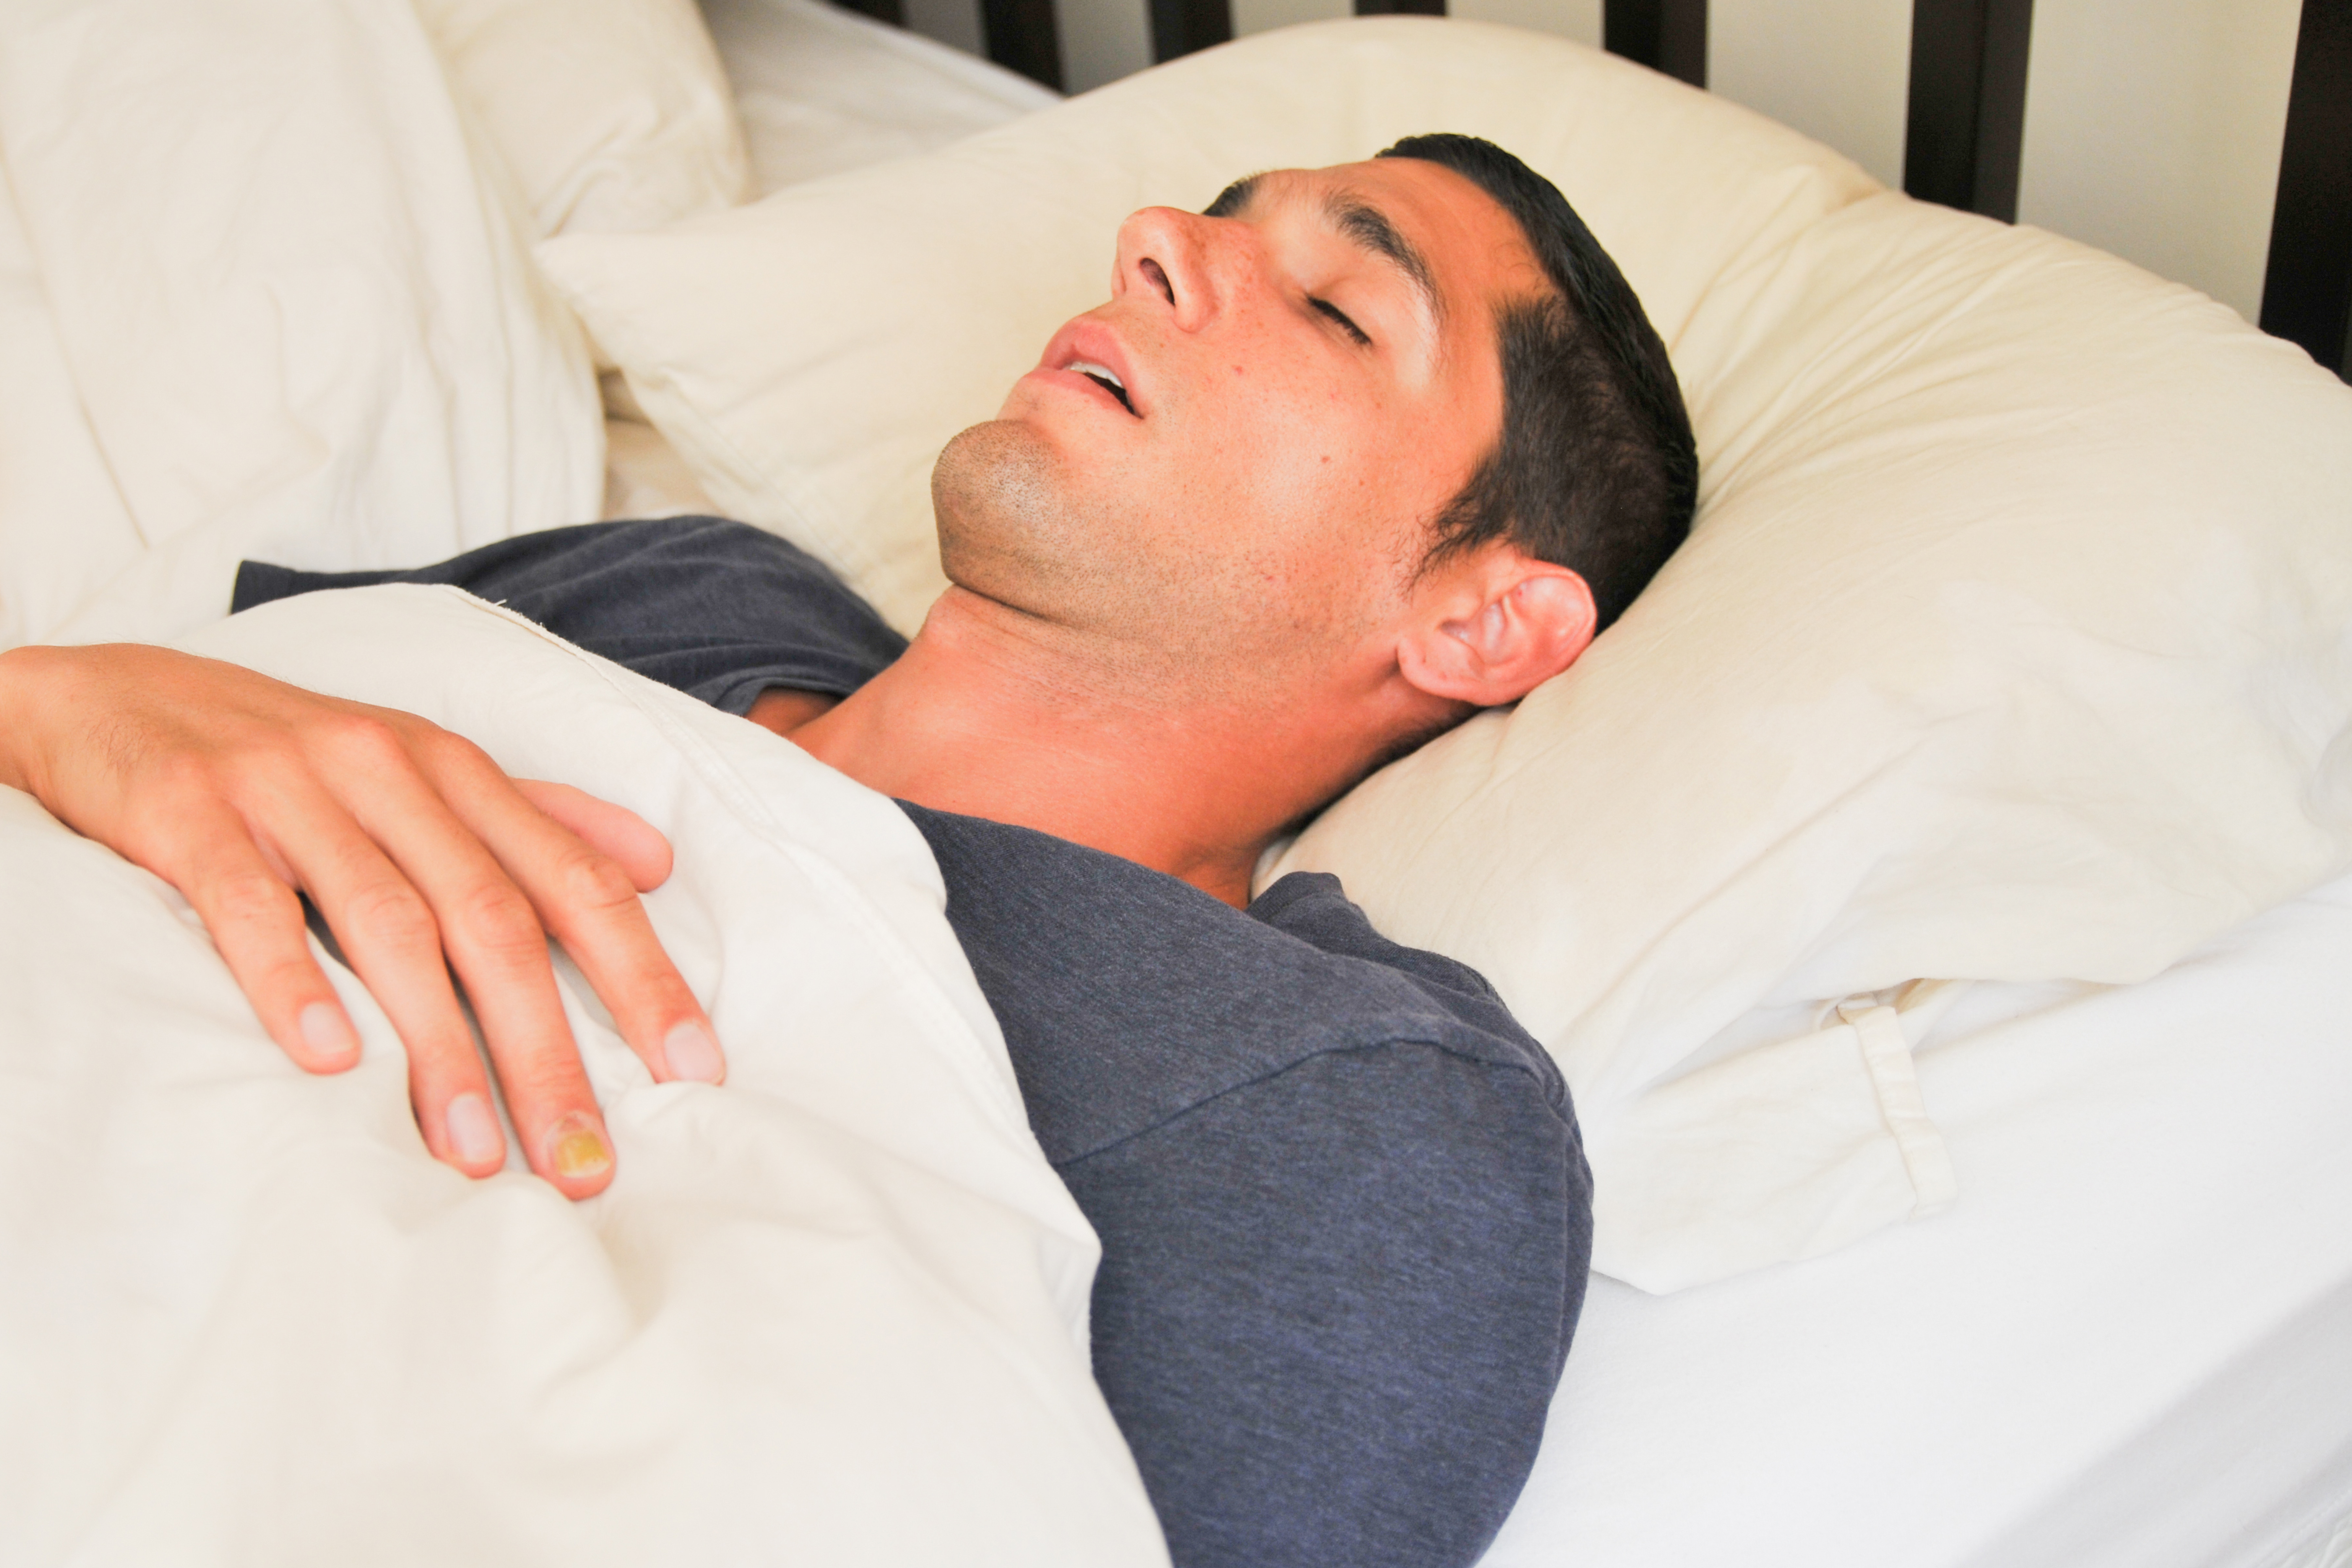 How to Stop Sleeping With Your Mouth Open | Healthfully | 7200 x 4800 jpeg 5900kB